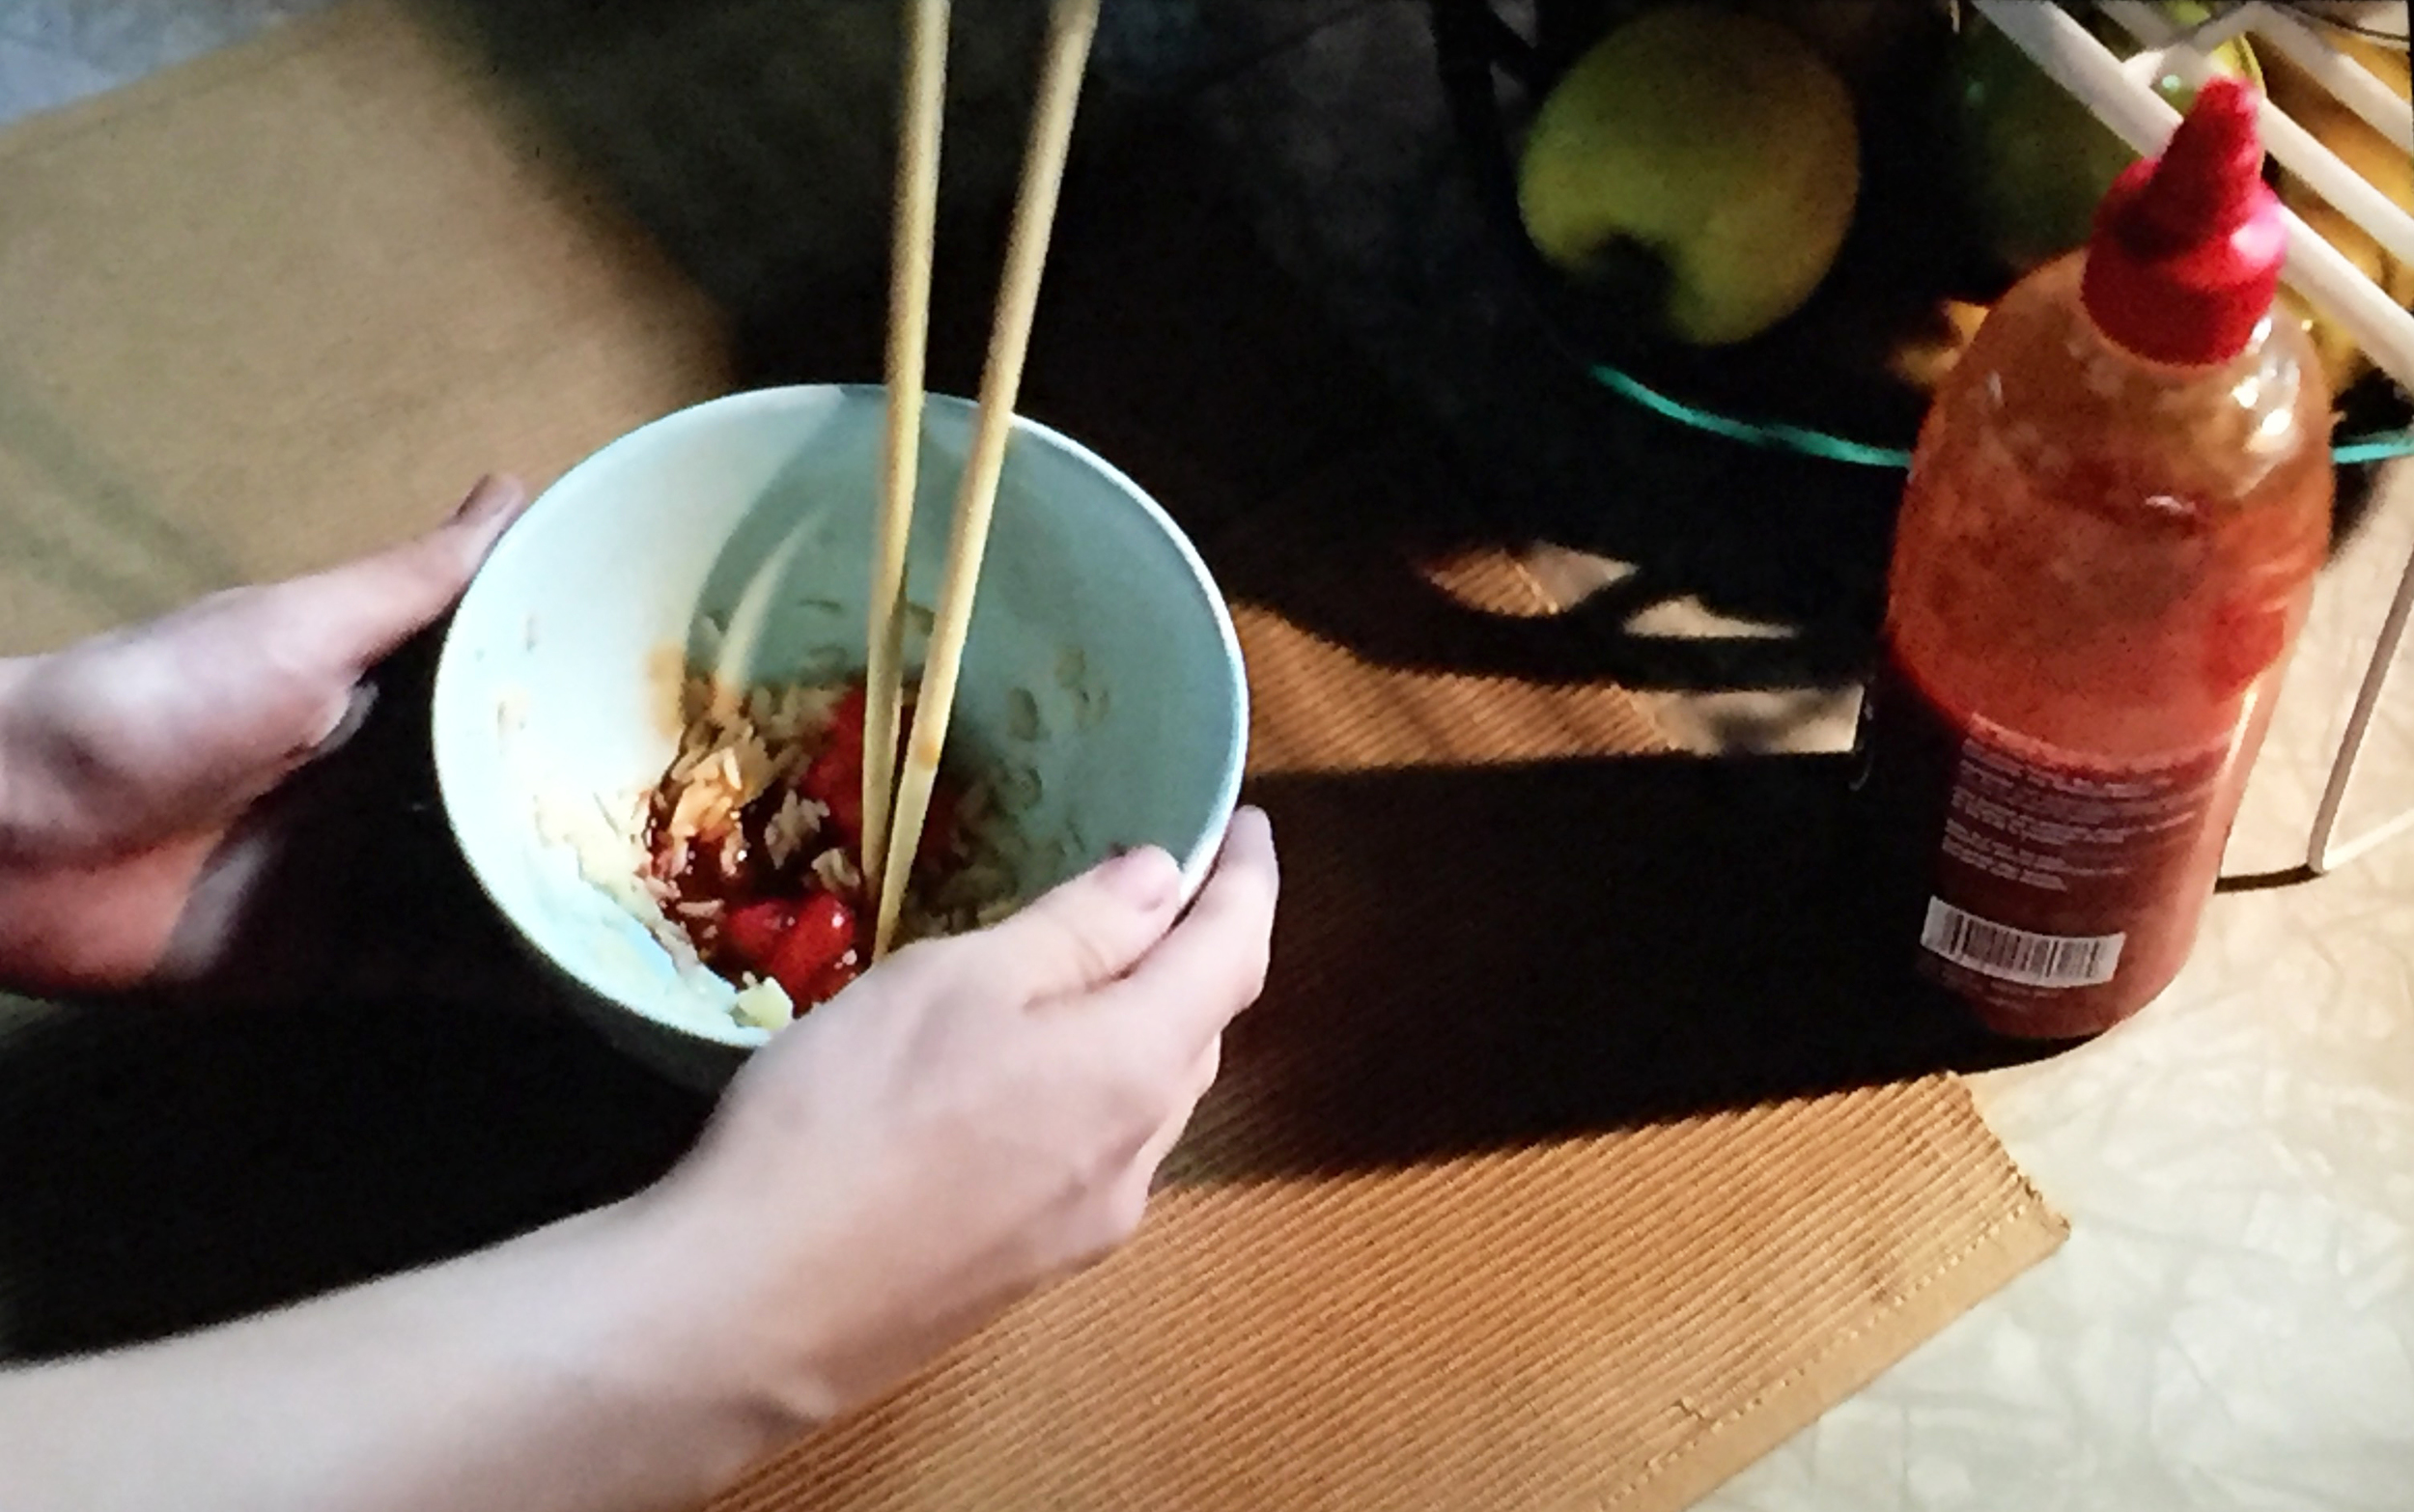 Episode 1.4 - Brains in rice with Sriracha